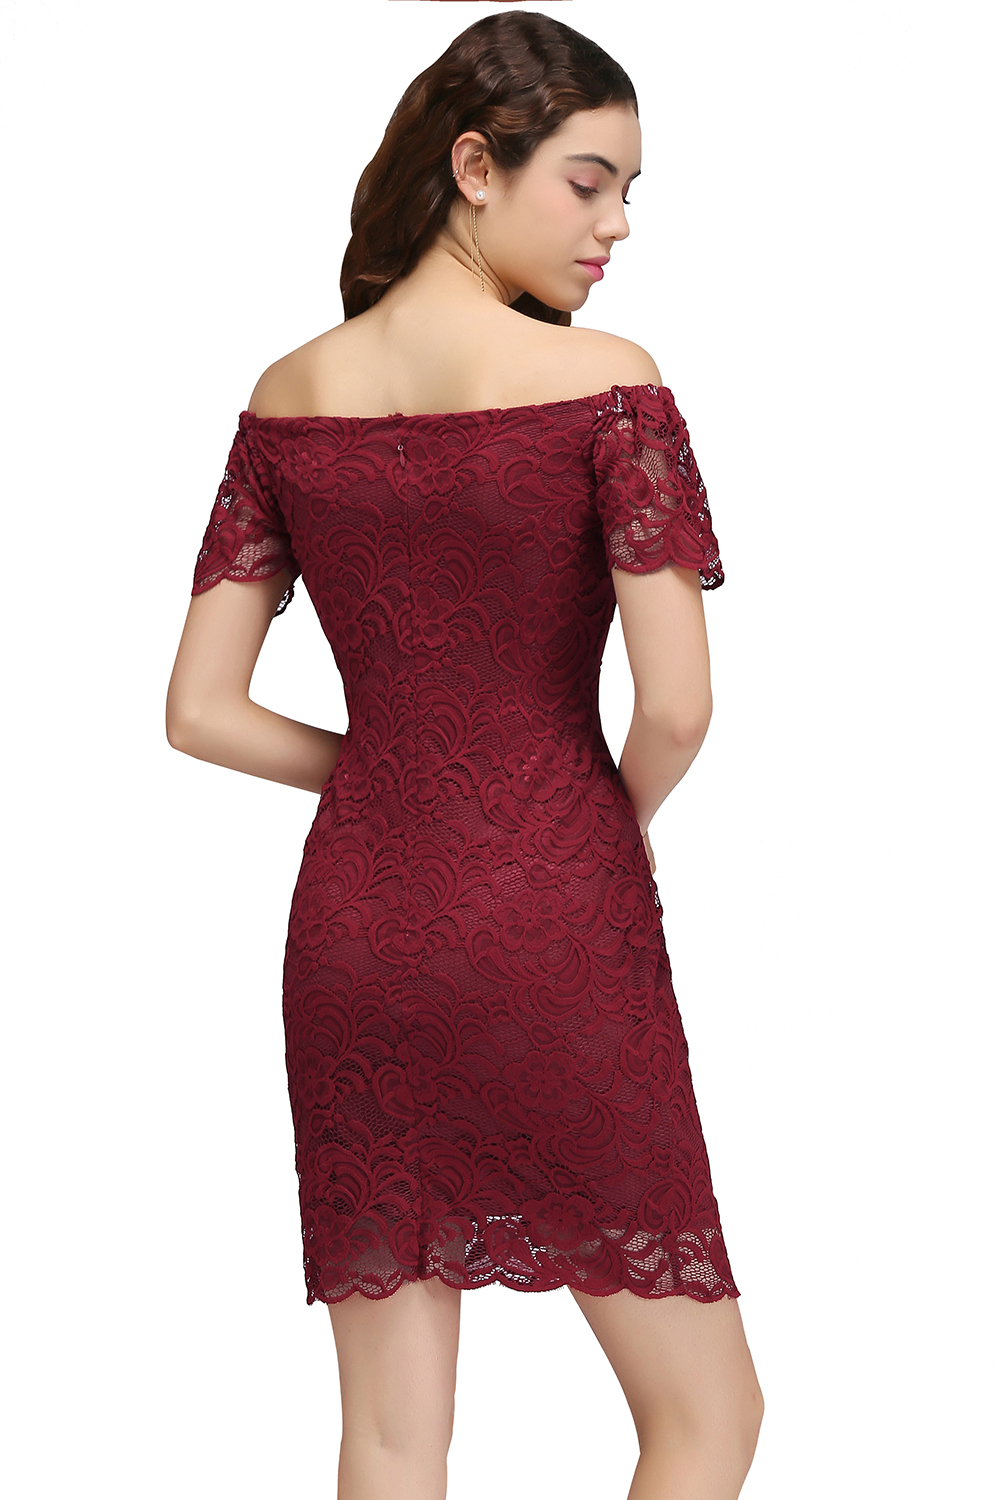 862b1dc44bcf7 US $20.28 29% OFF 2018 Burgundy Lace Off the Shoulder Bodycon Cocktail  Dresses Sexy Short Prom Dresses Party Dress Gowns -in Cocktail Dresses from  ...